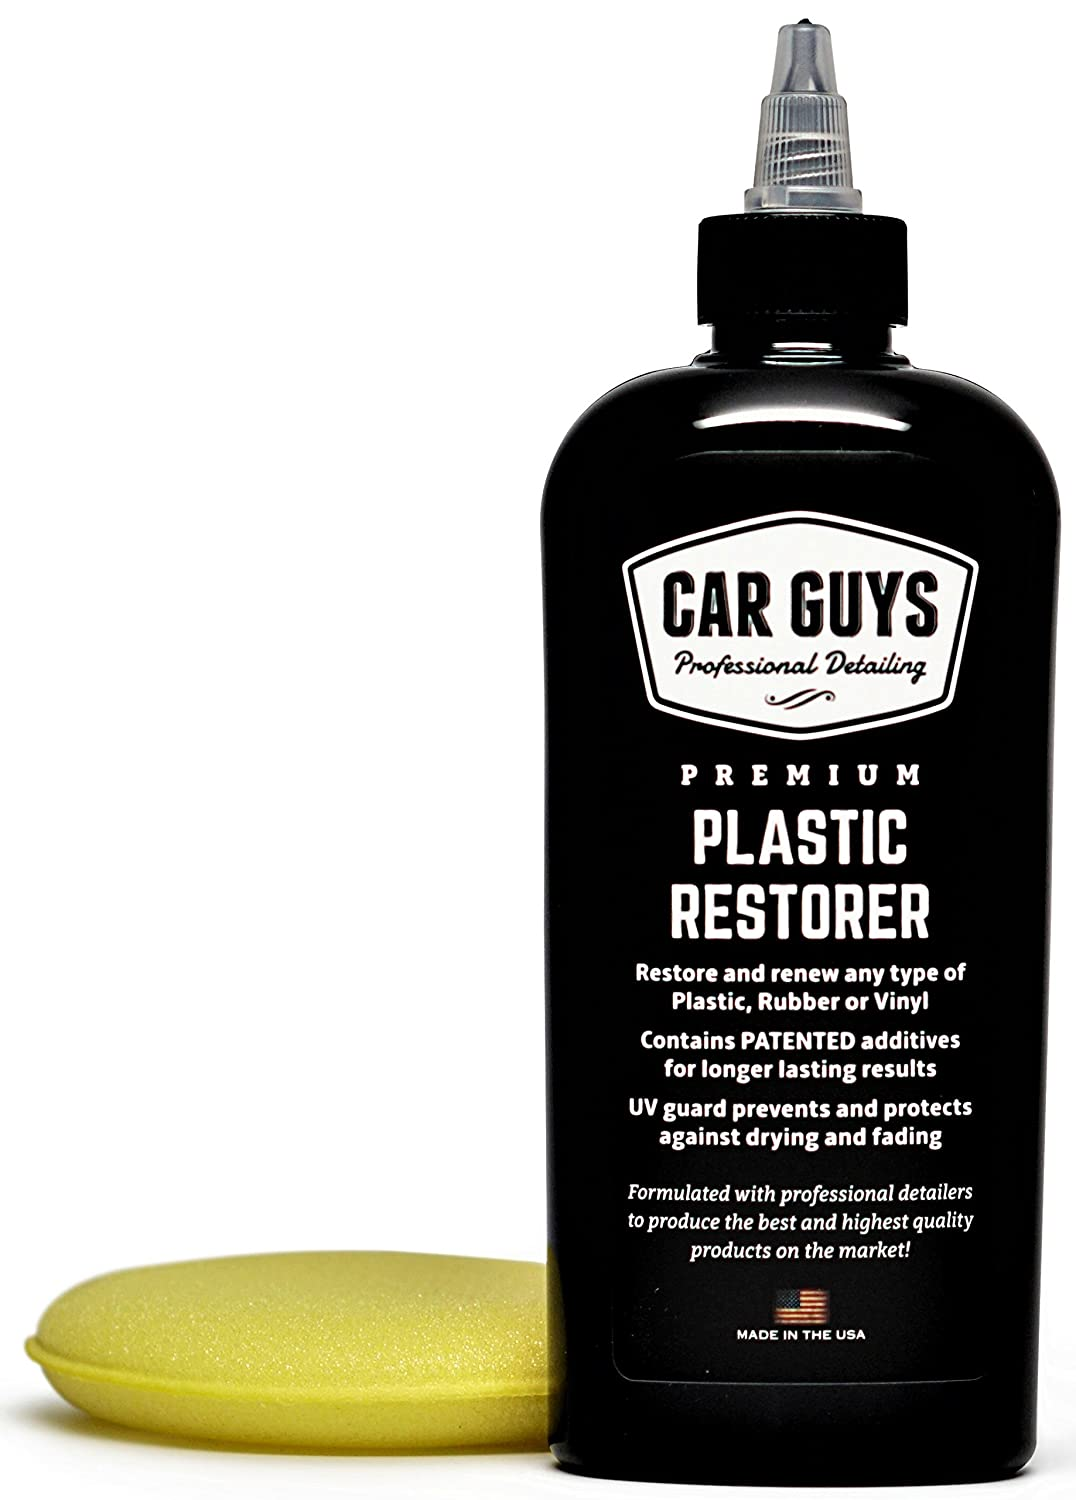 CarGuys Plastic Restorer - The Ultimate Solution for Bringing Rubber, Vinyl and Plastic Back to Life! - 8 oz Kit 4333069227